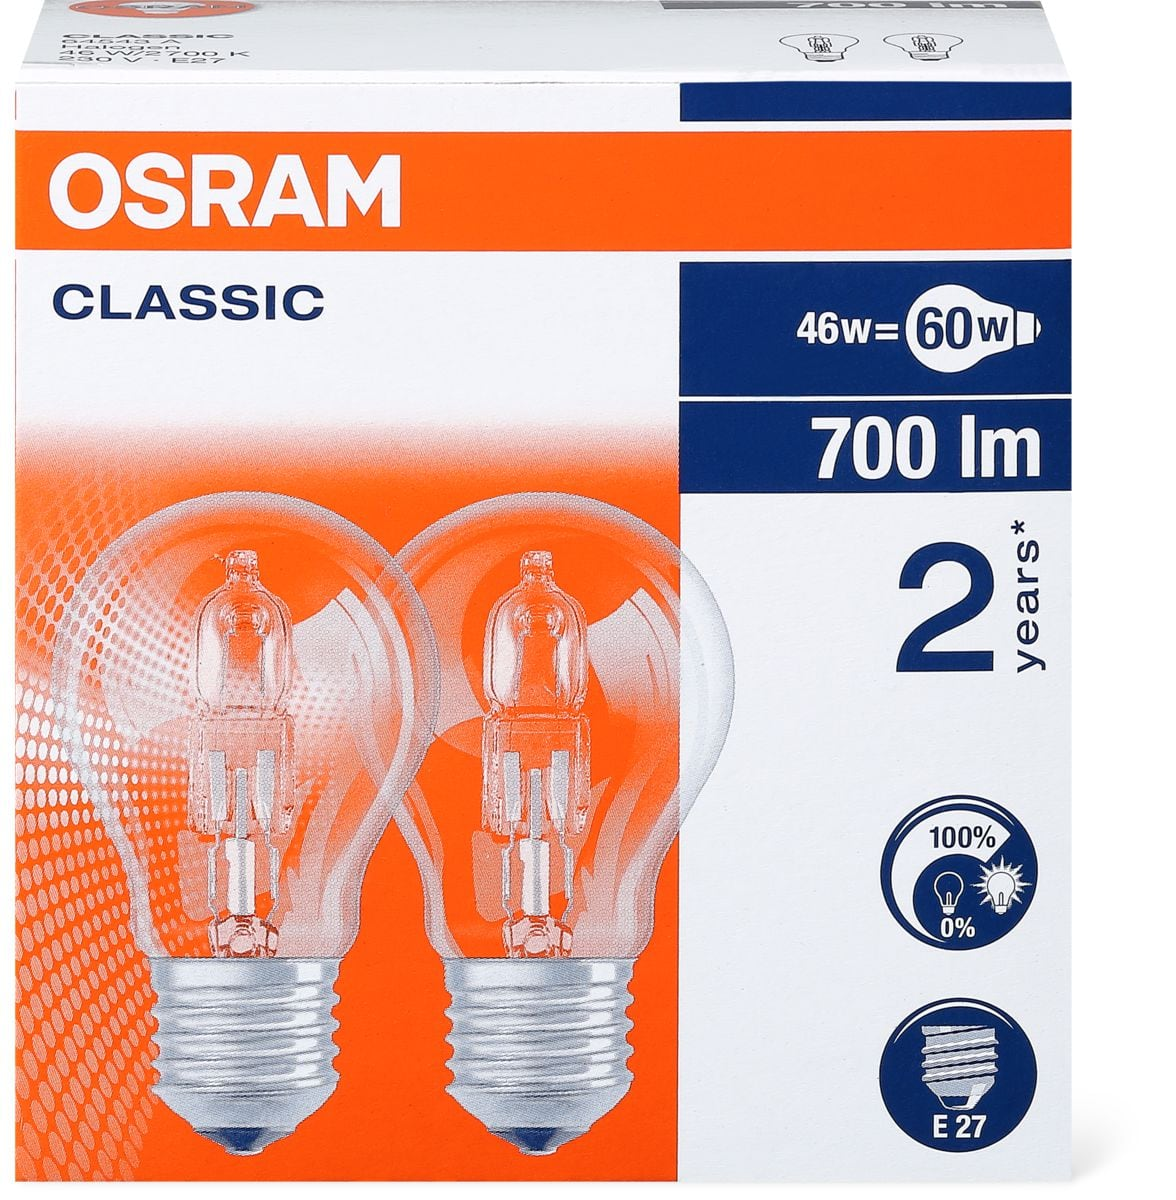 Osram Halogen CL A 46W E27 DUO